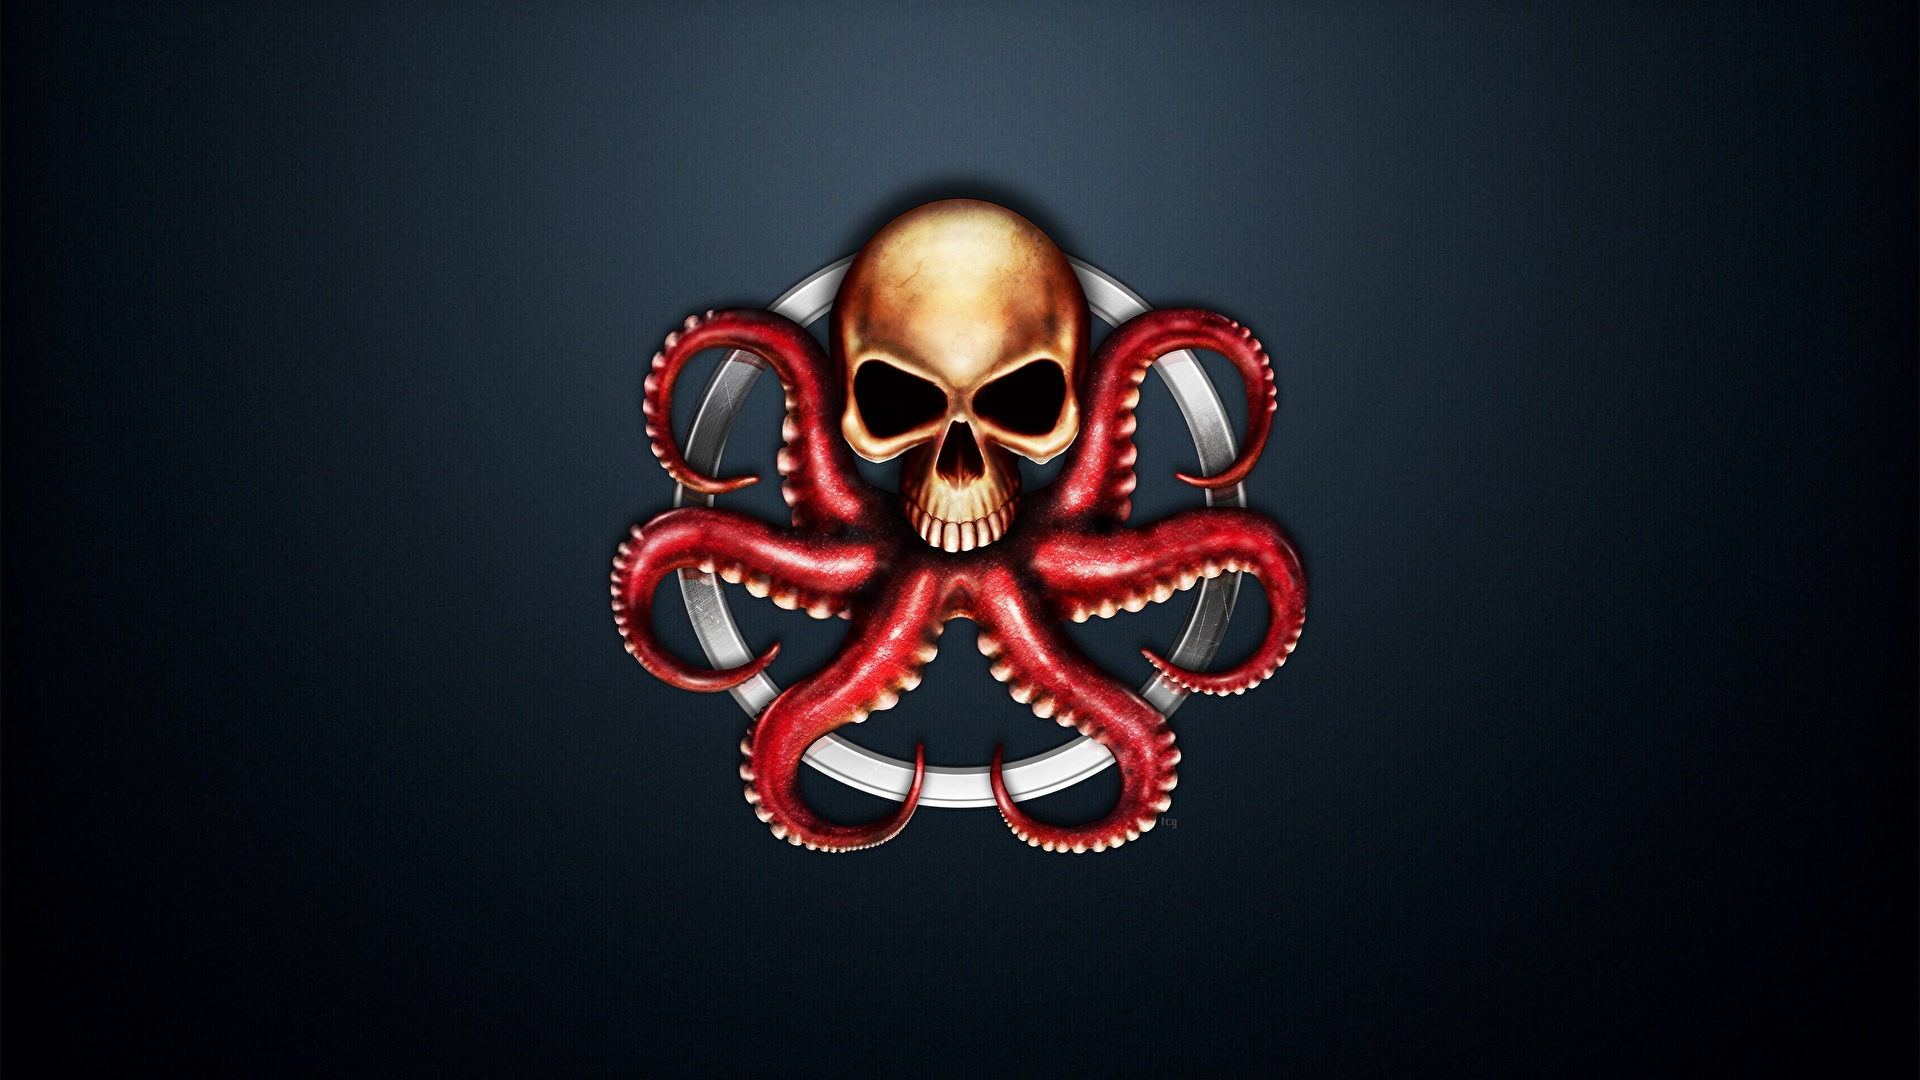 Red skull marvel wallpaper